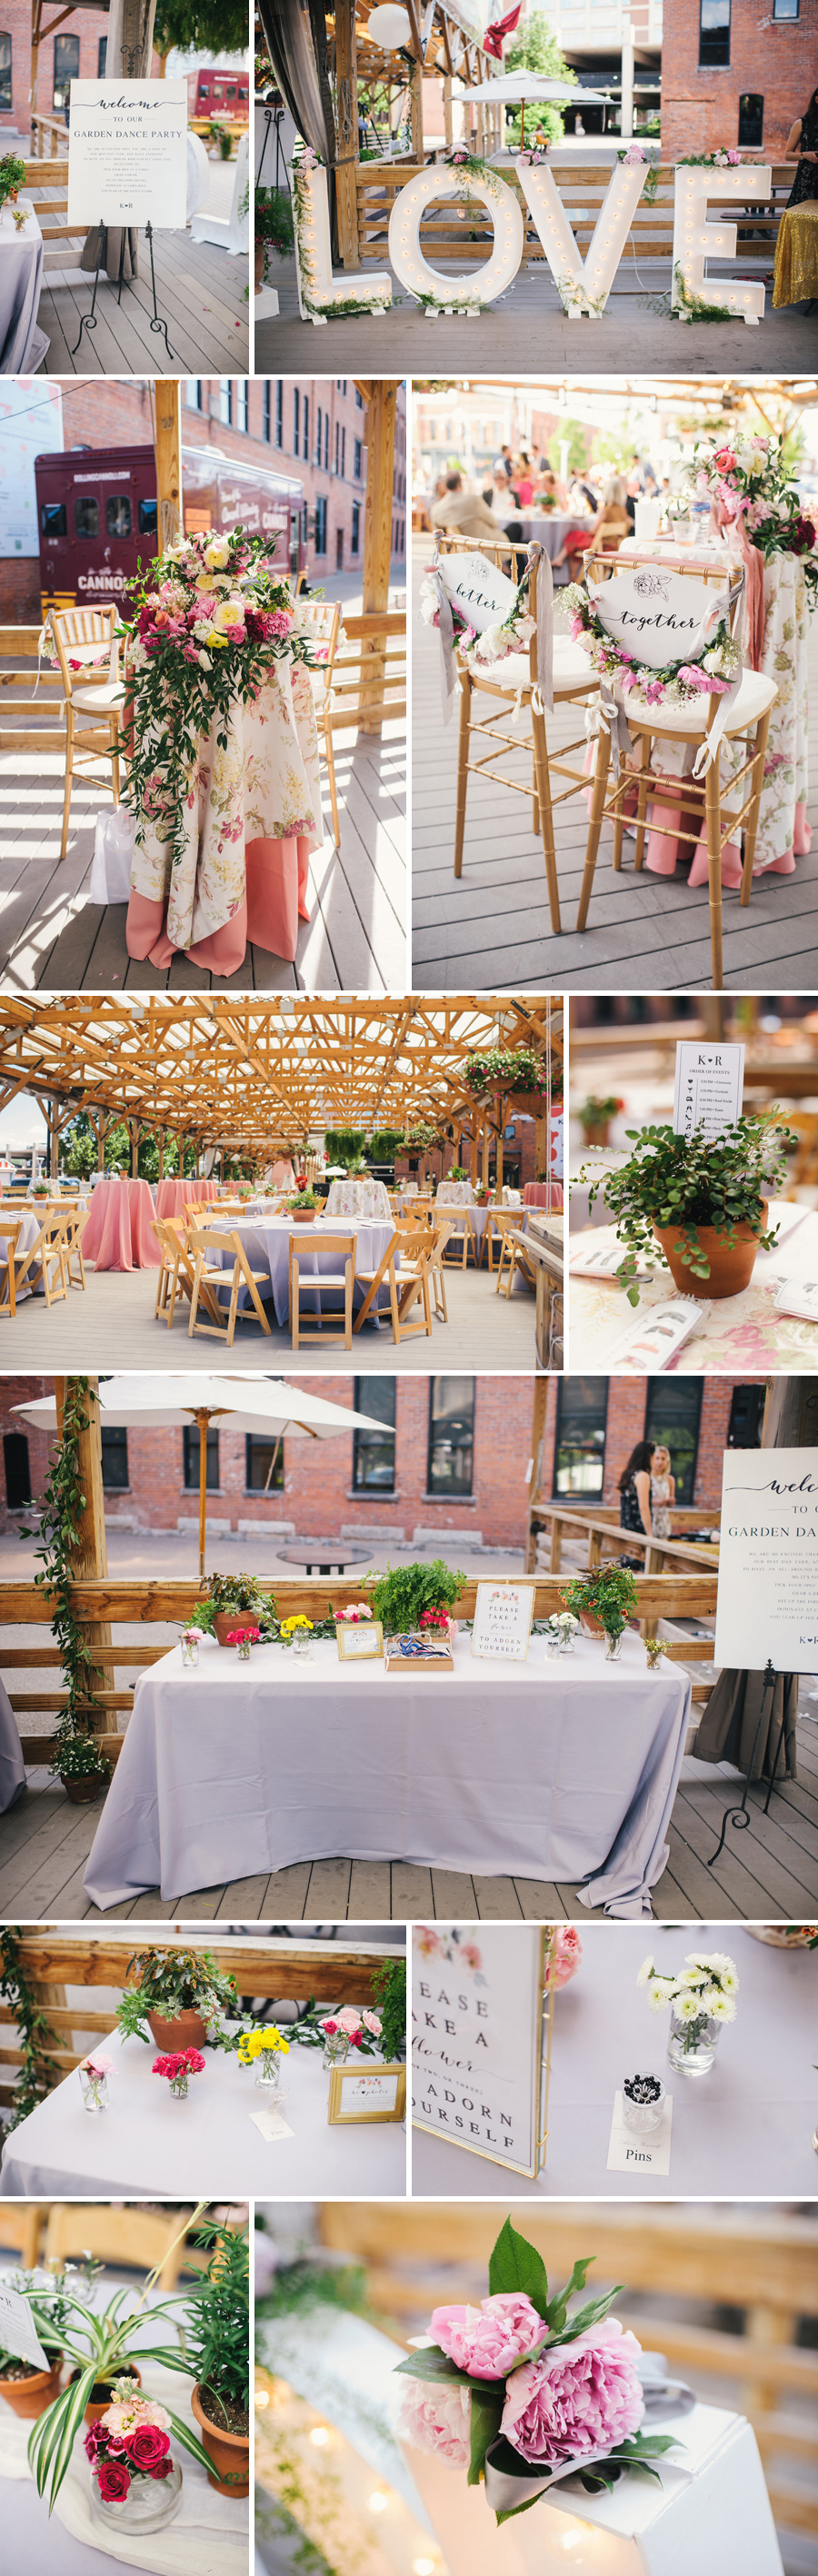 reception decor with flowers from west wind floral at larkin square